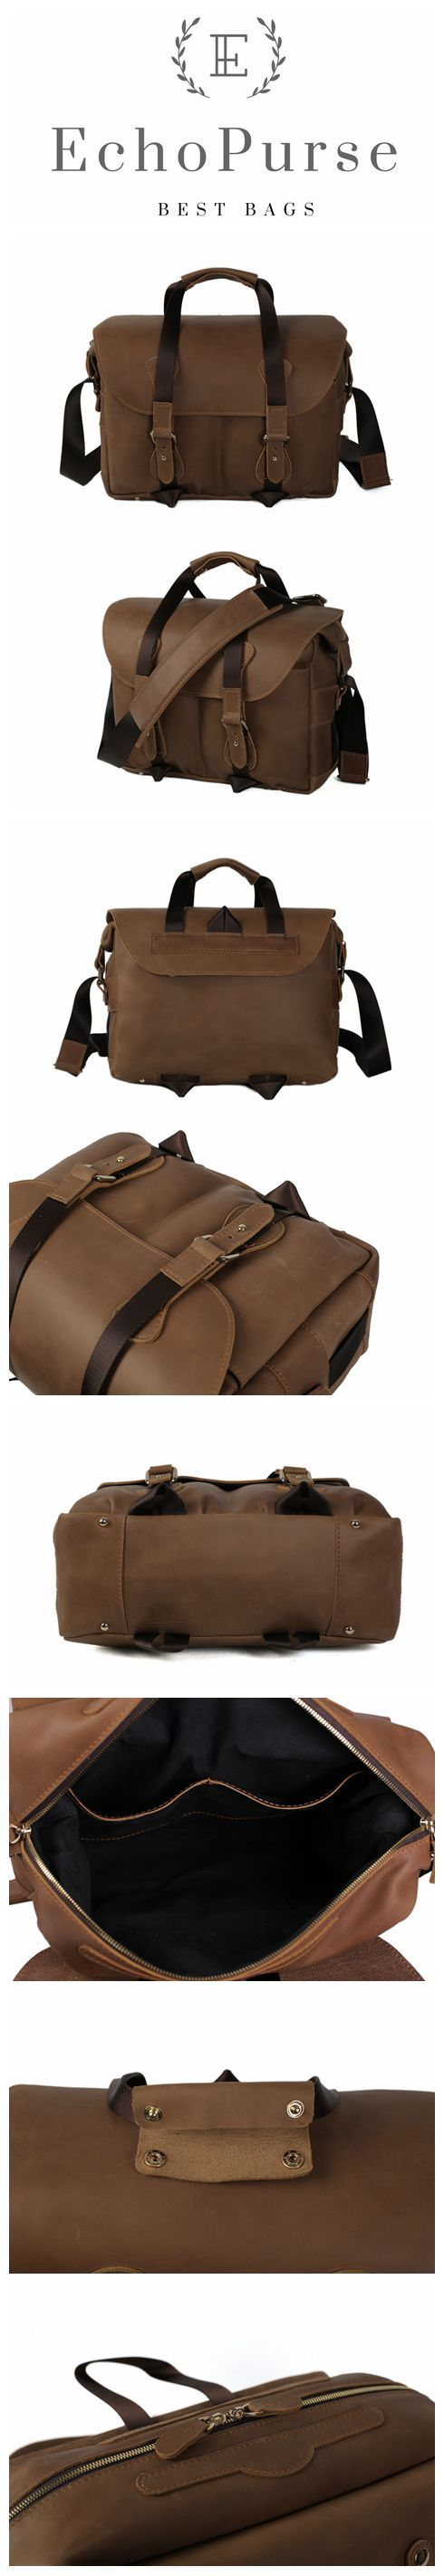 Genuine Leather DSLR Camera Bag, Professional Camera Pouch, Messenger Bag D220